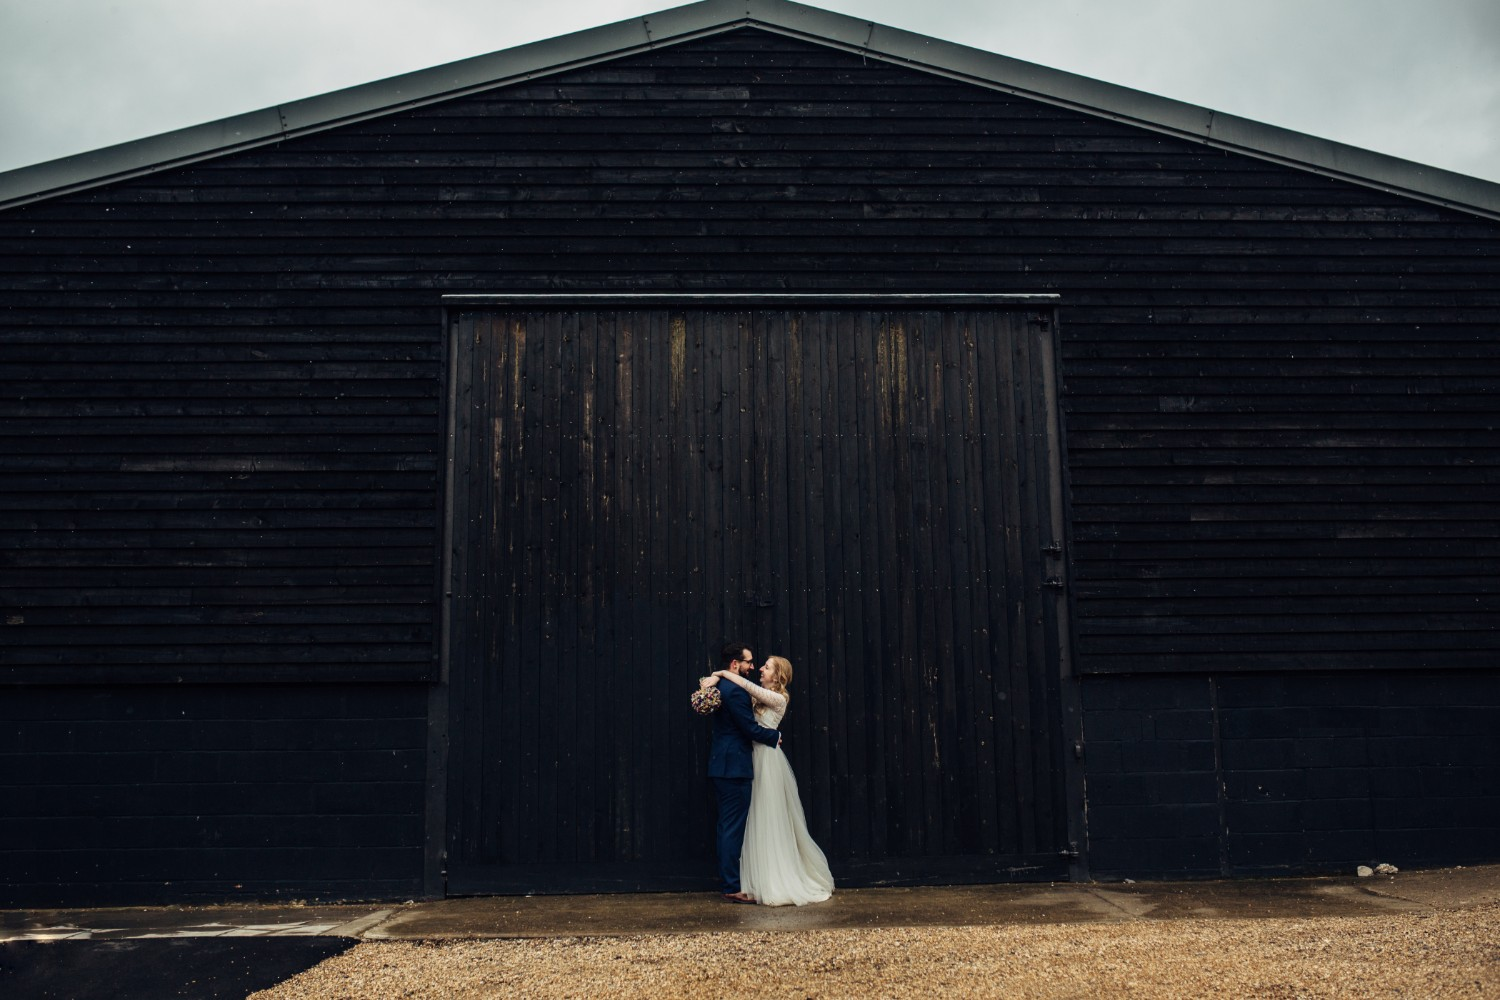 Liz + Dave Tewin Bury Farm Winter Wedding Naomijanephotography346.jpg